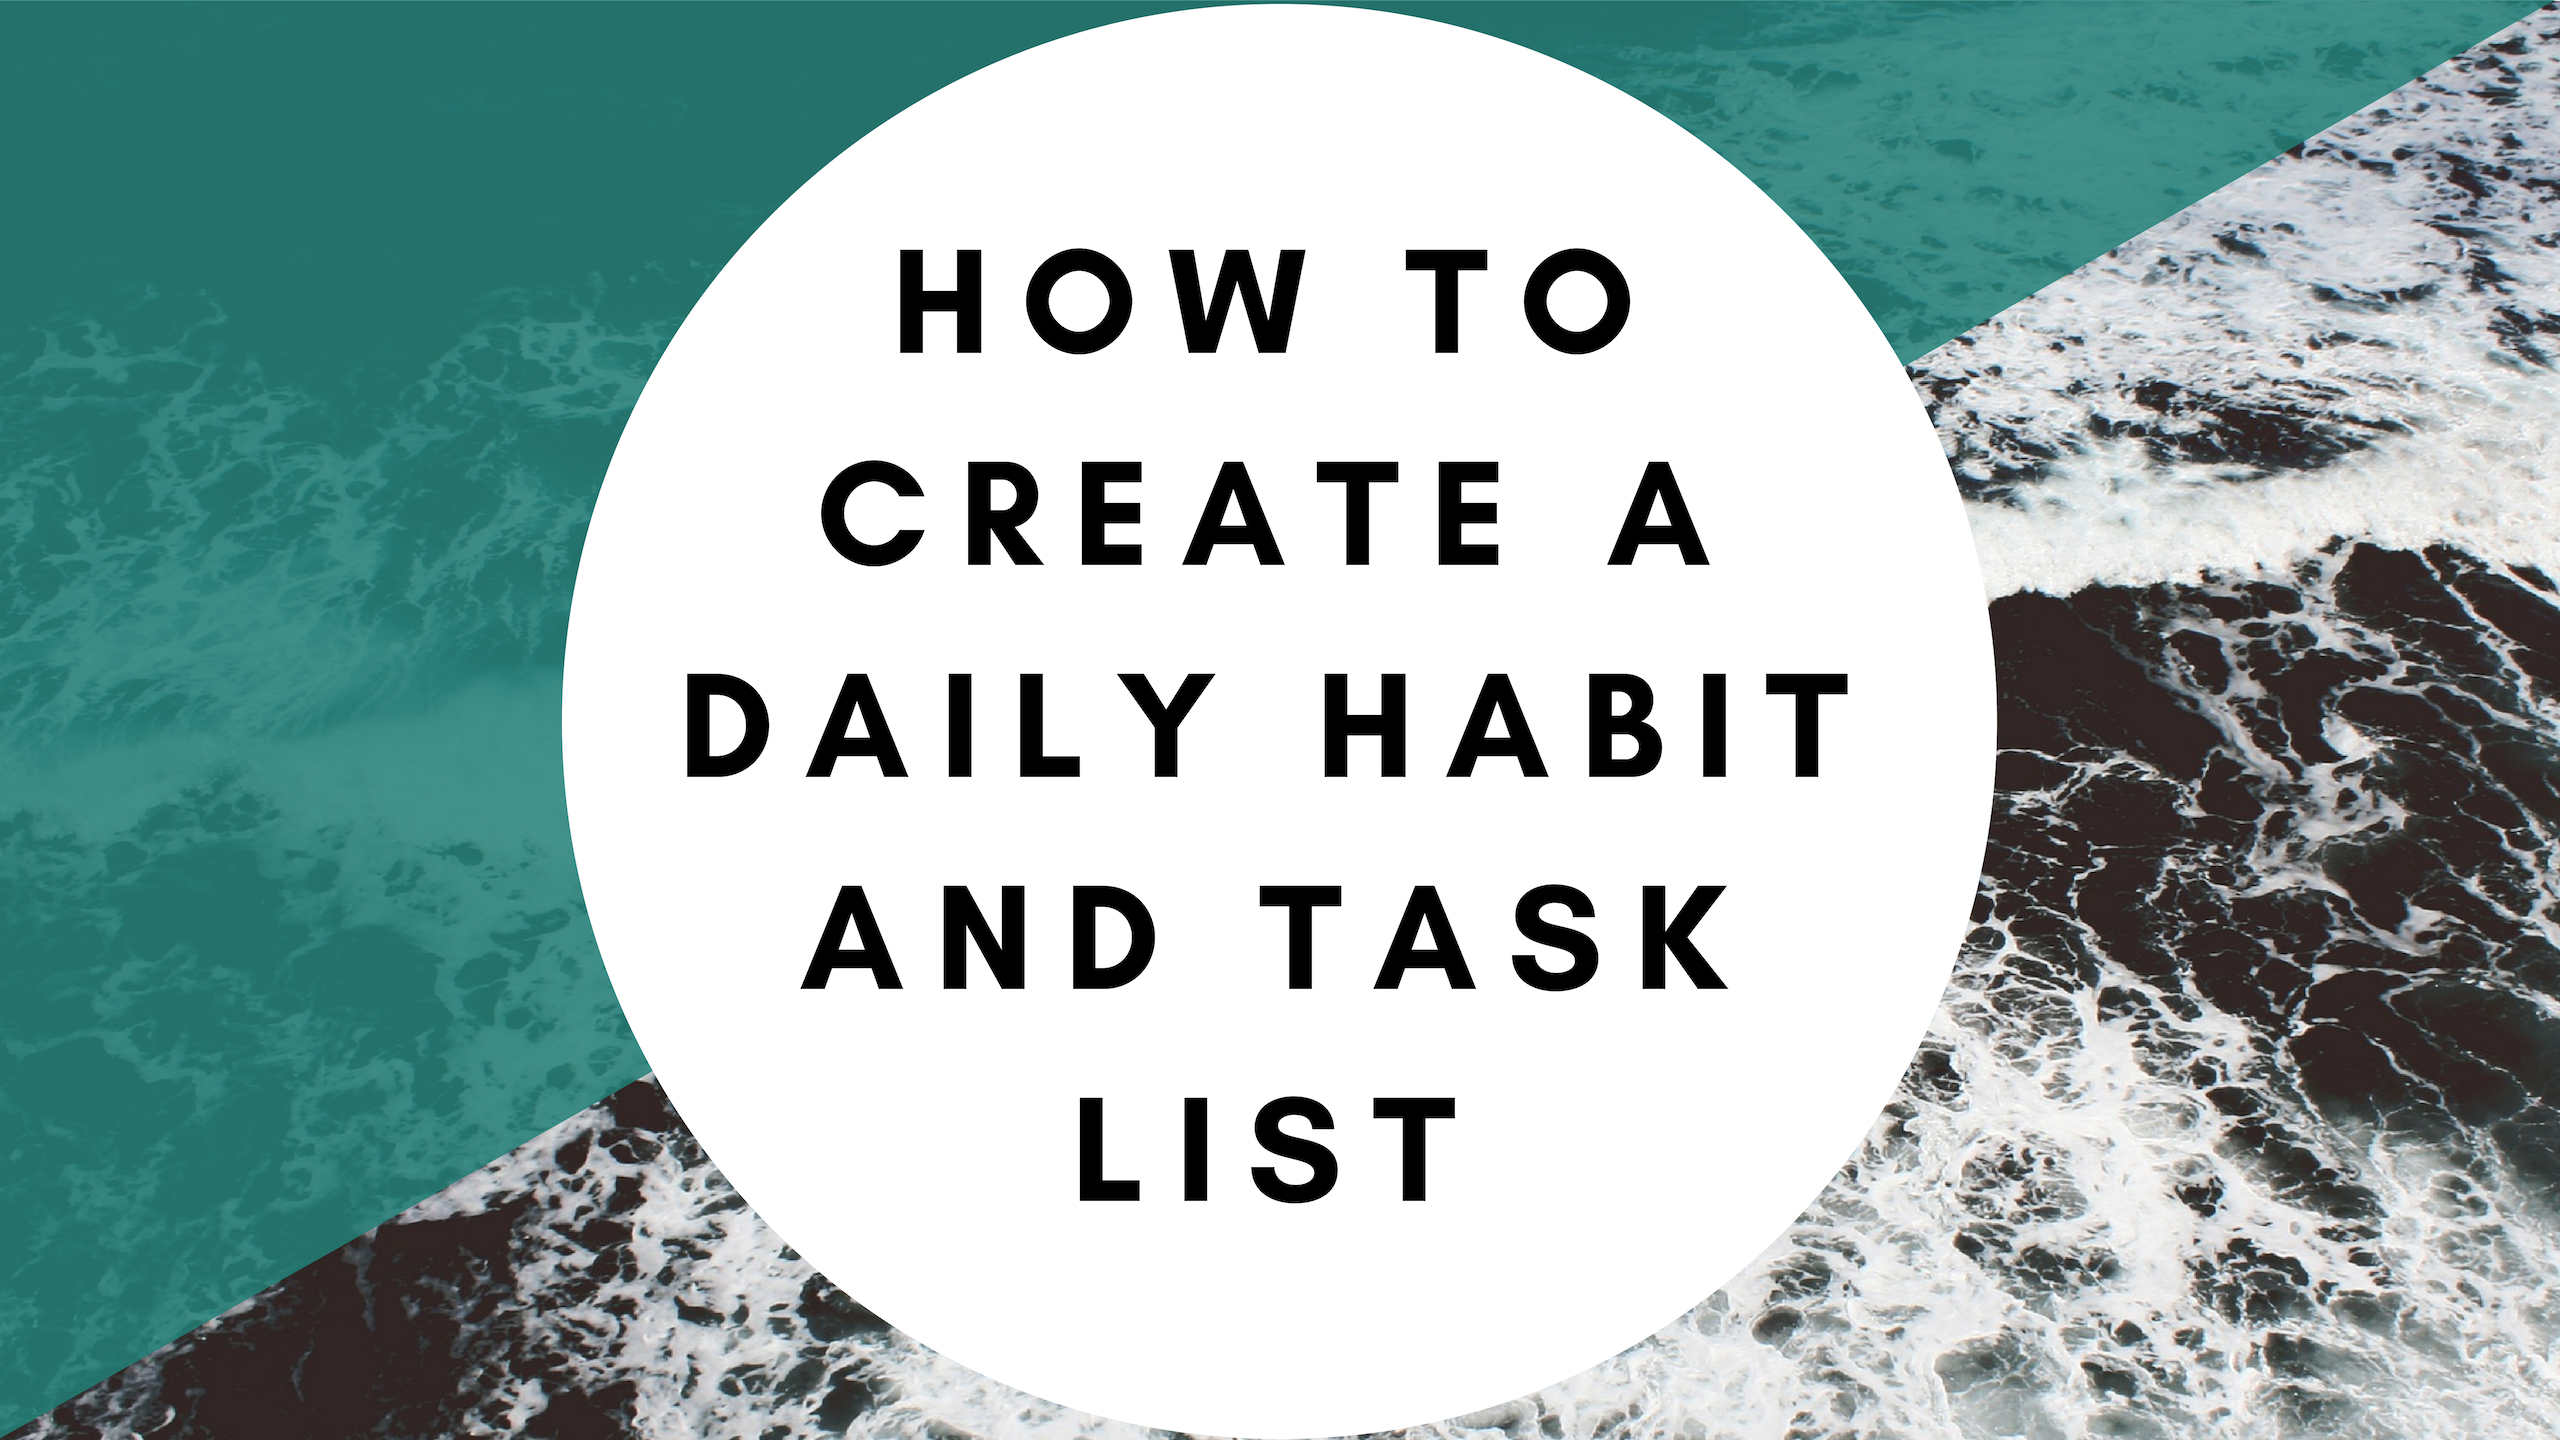 how to create a daily habit and task list